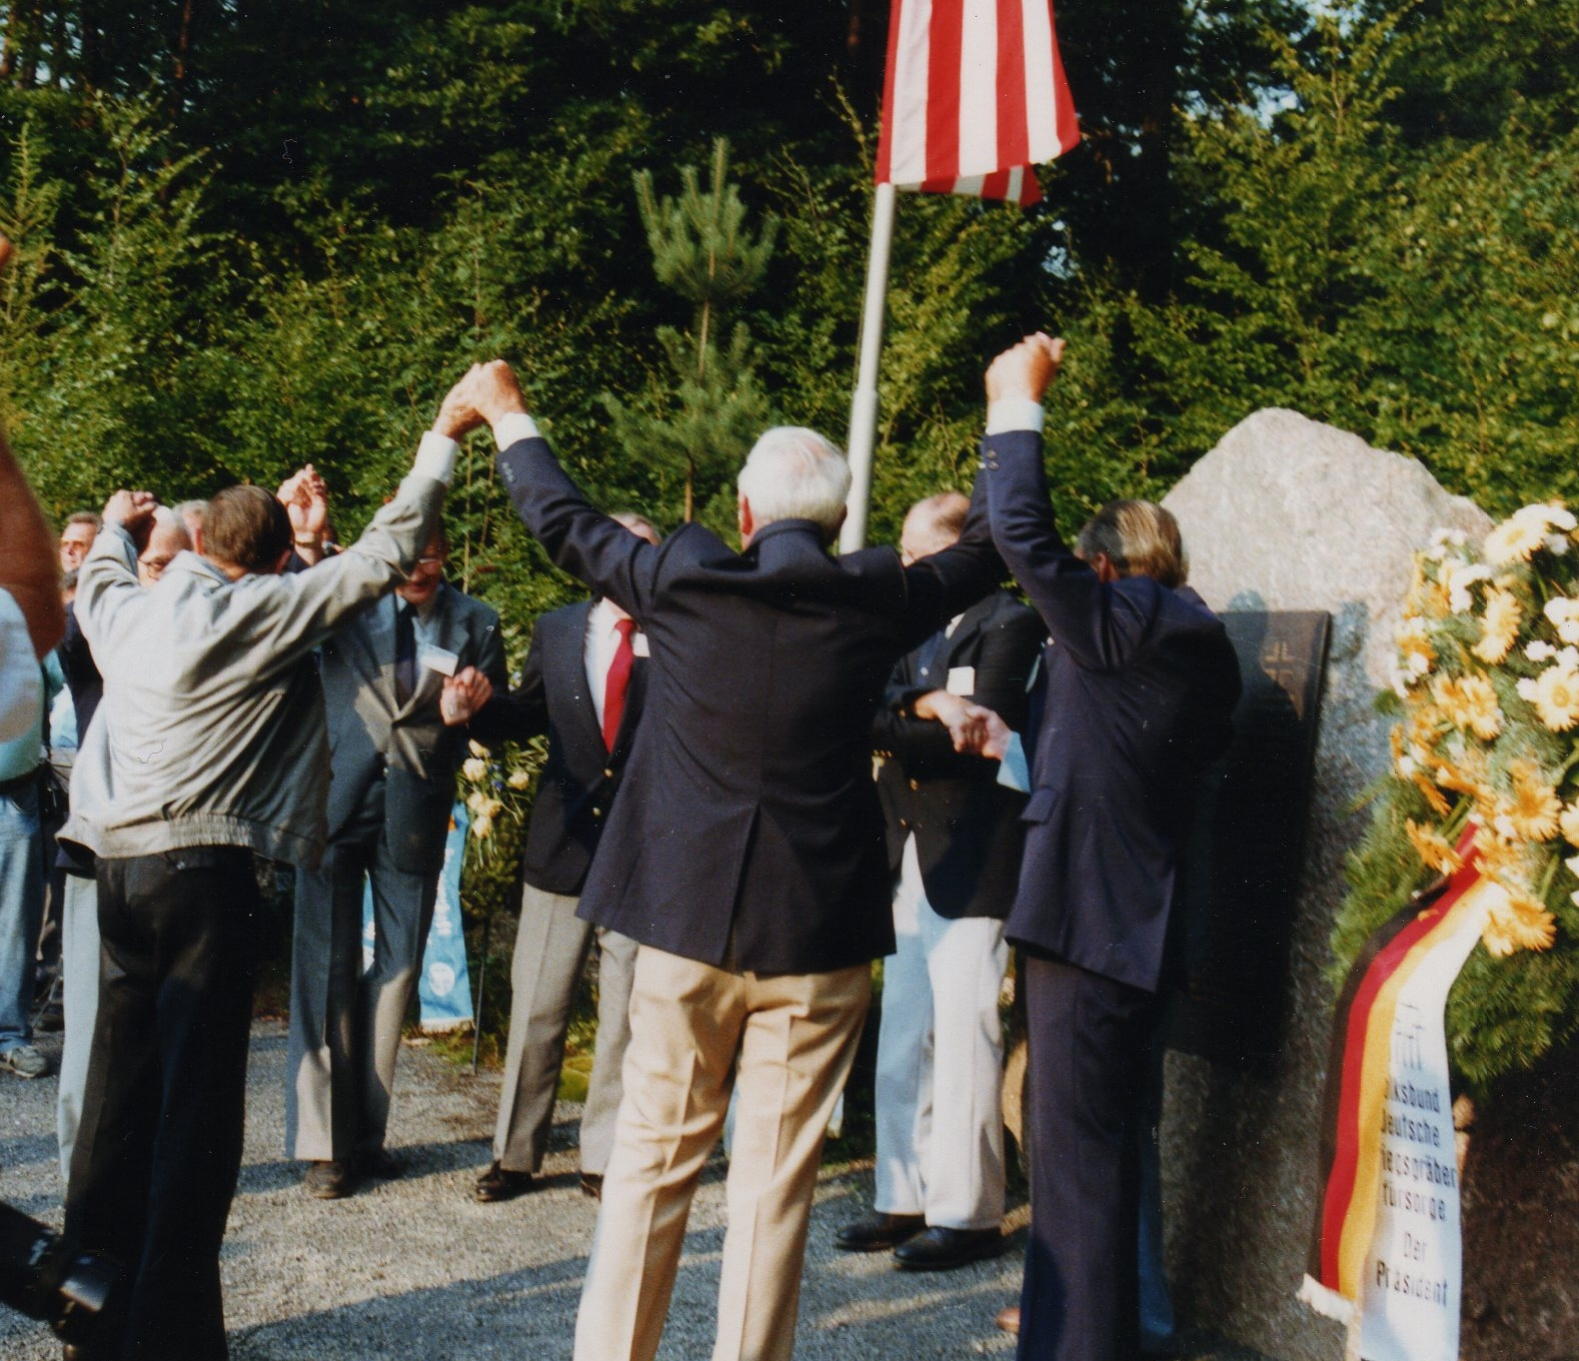 German and Amercan former enemies who fought in the Kassel Mission raise their hands in victory over war, celebrating new friendships after together unveiling the three plaques at the Memorial at the dedication ceremony on 1 August 1990. Photo courtesy Walter Hassenpflug.